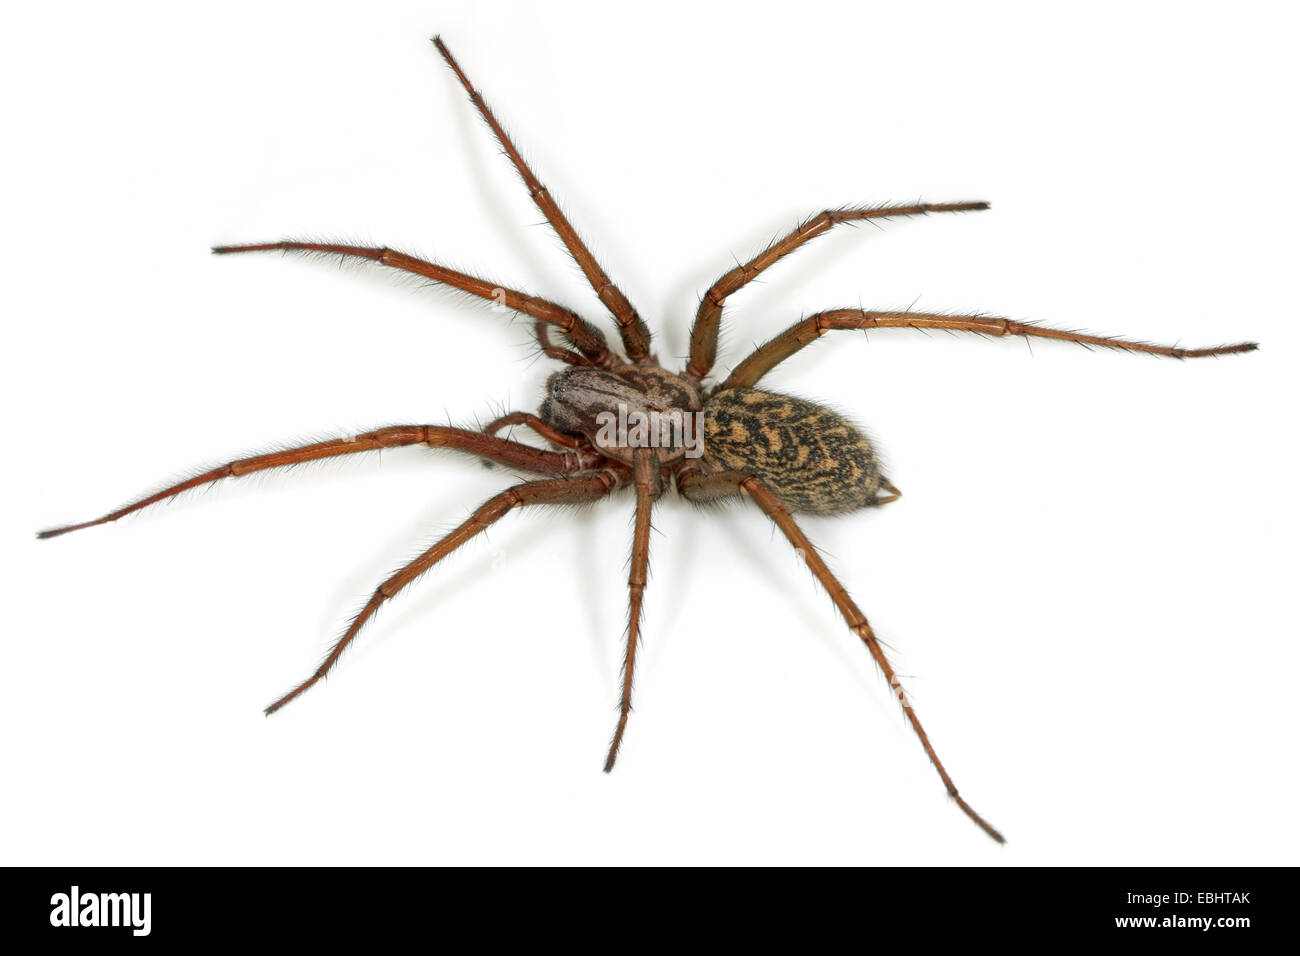 A female House spider (Tegenaria atrica). This spider is one of the largest House spiders, part of the family Agelenidae, - Stock Image